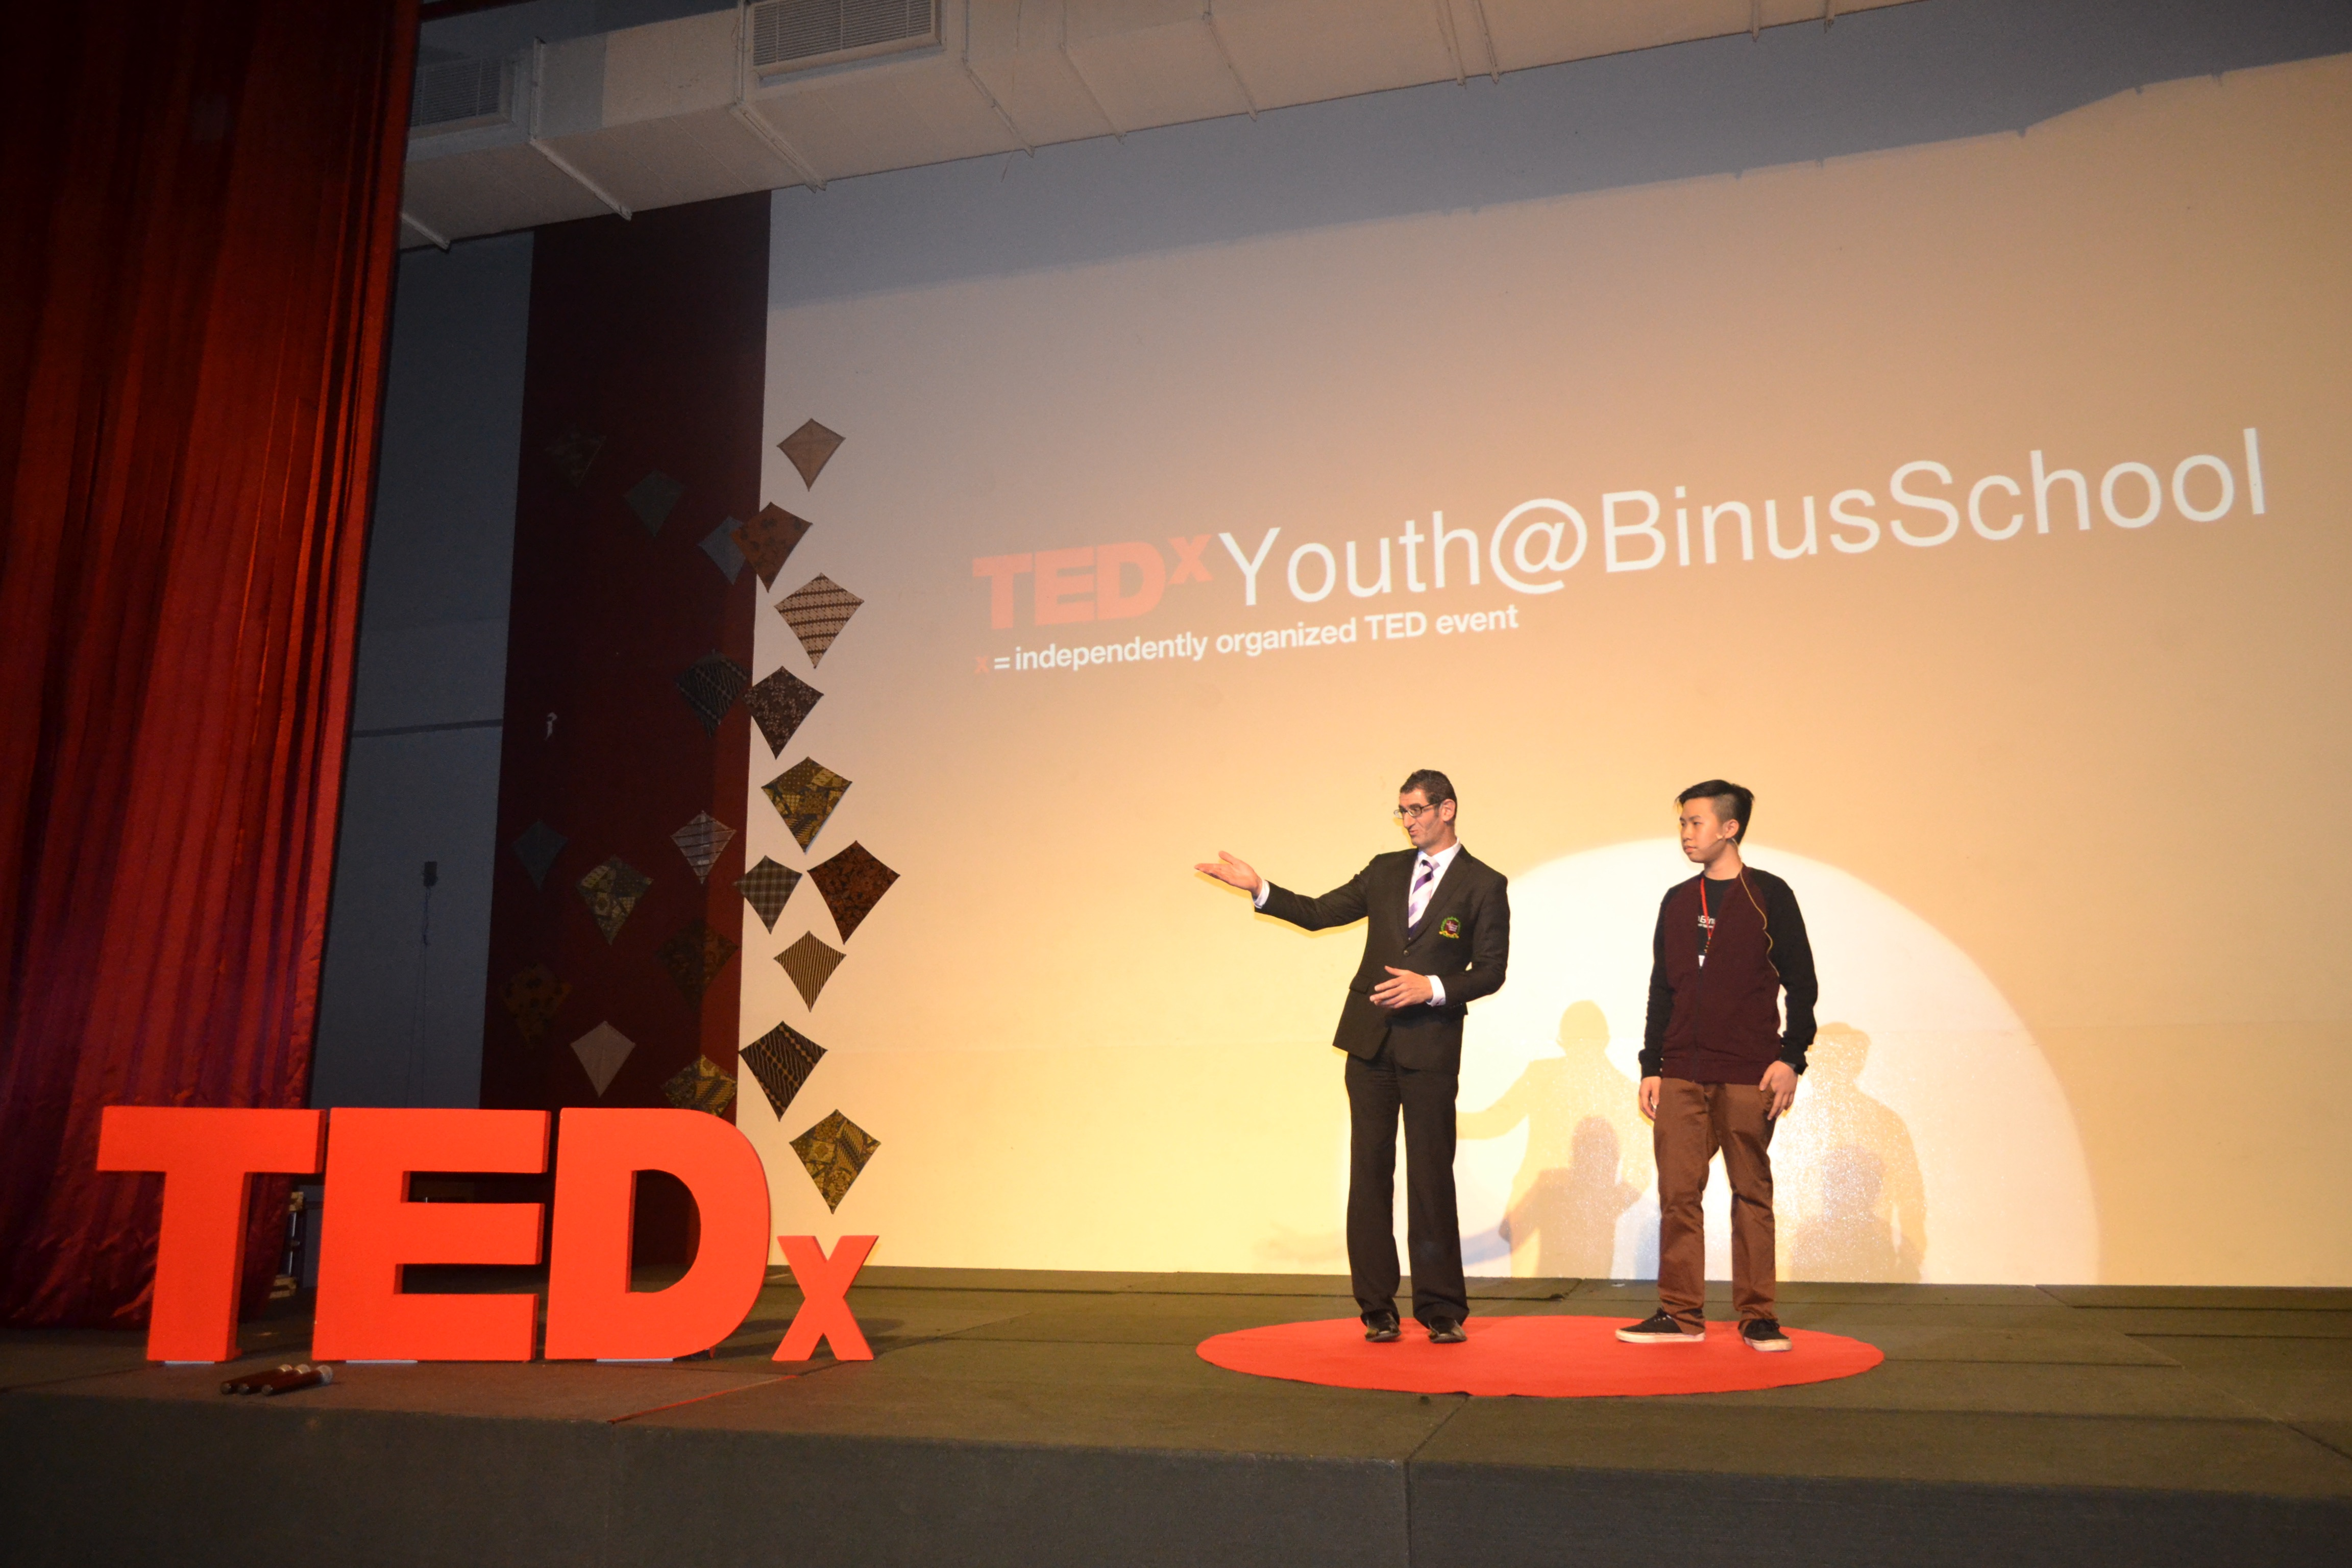 Full Video of TEDxYouth@BinusSchool Event, 20th February 2016